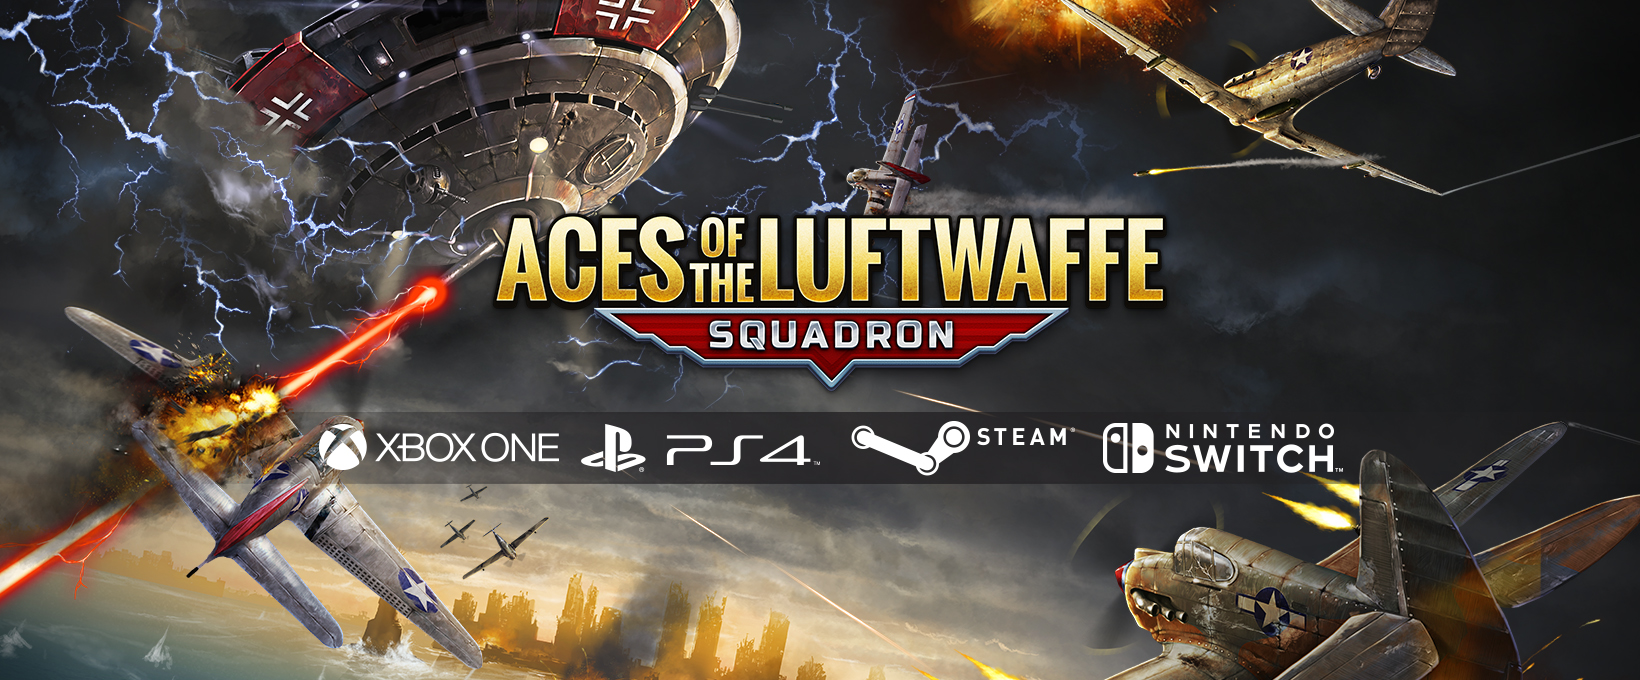 Aces of the Luftwaffe – Squadron on much more platforms!